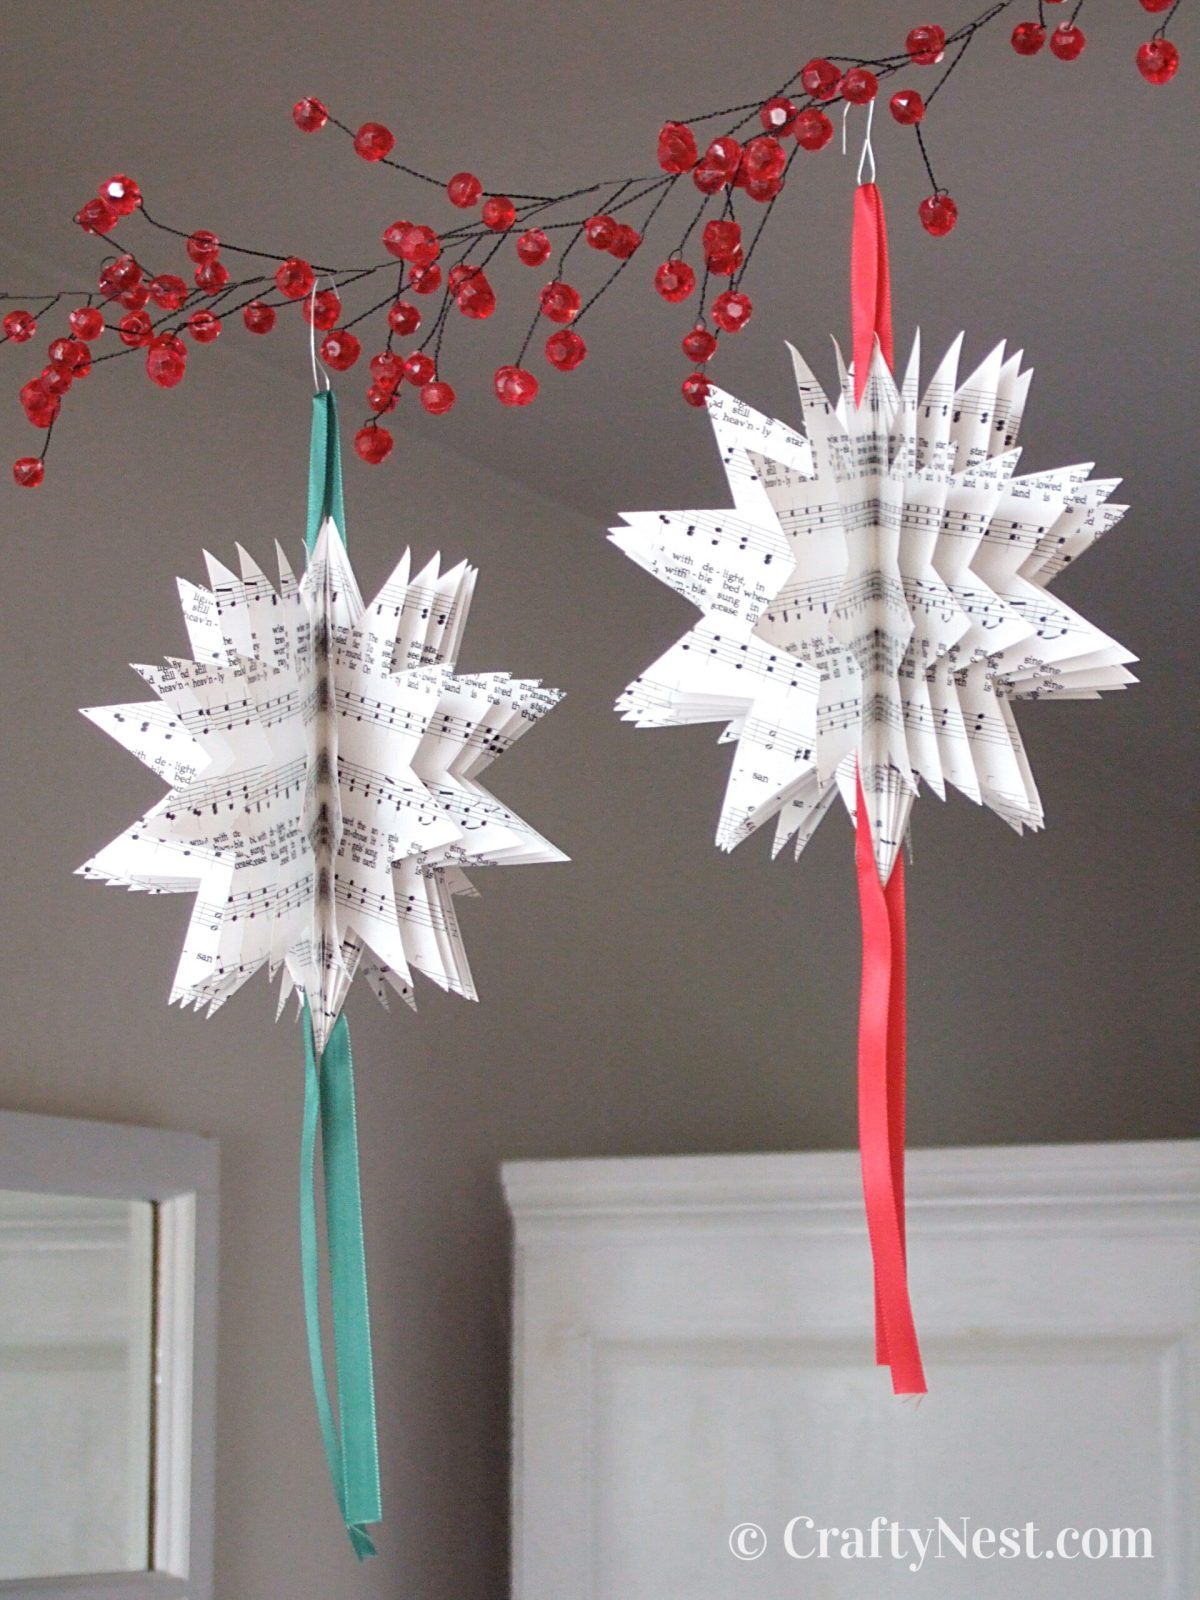 Two Christmas ornaments made with sheet music, photo